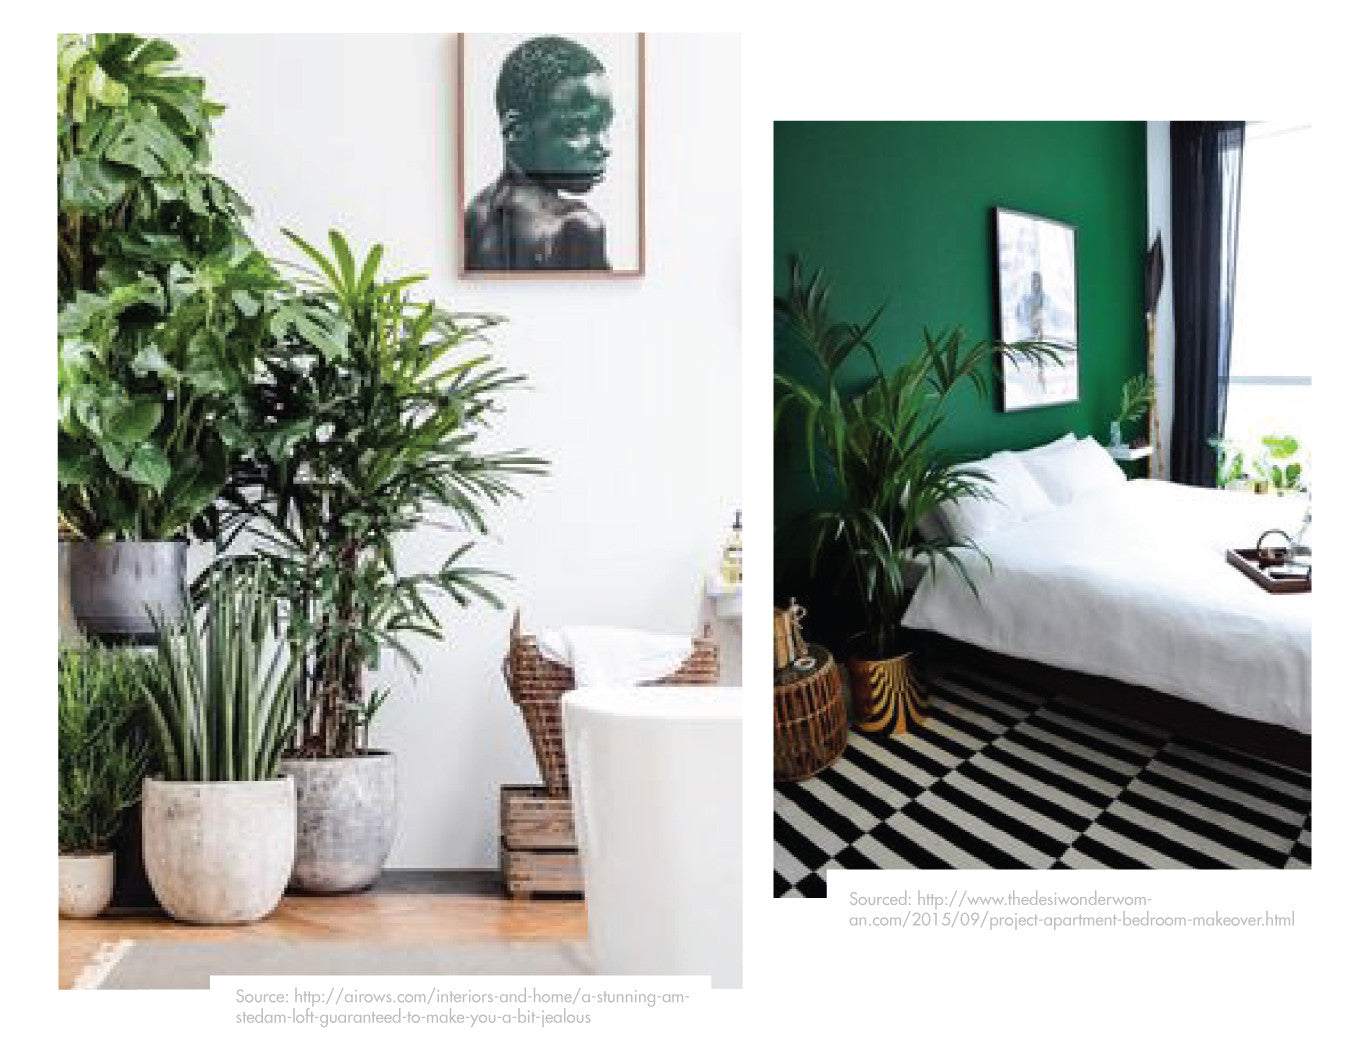 green-plants-for-the-home/renew/blog/beinspired